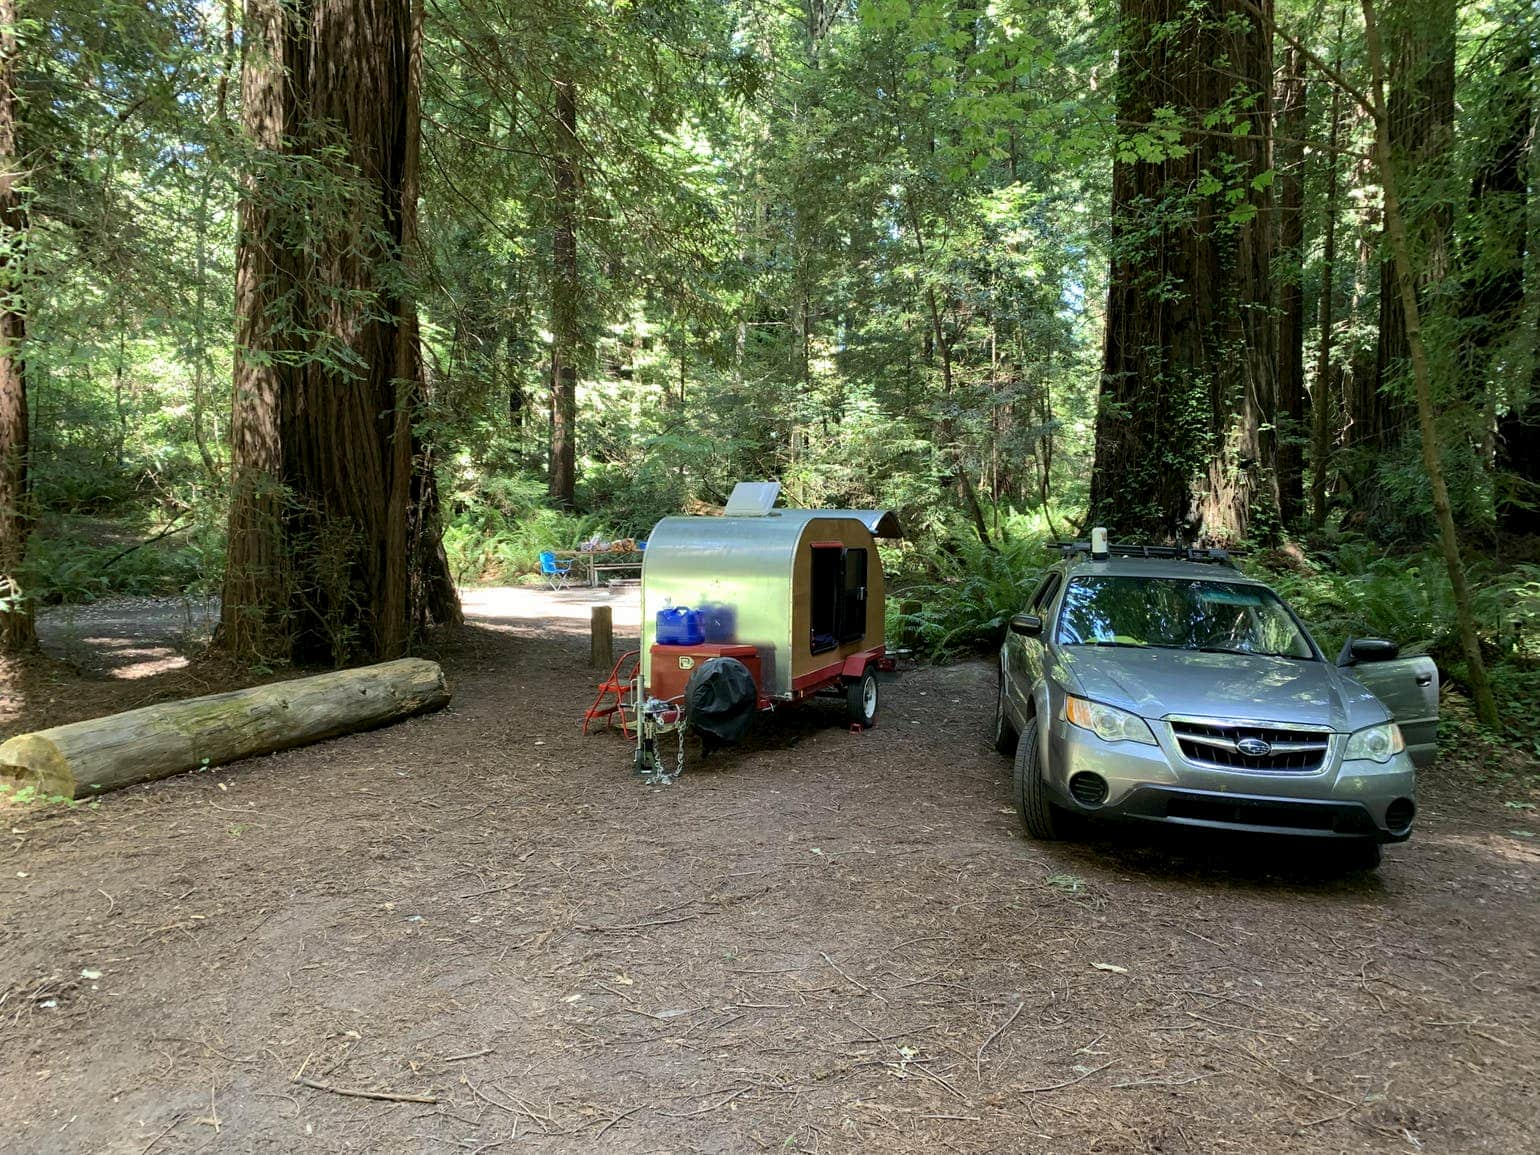 Teardrop trailer and car parked in campsite below an evergreen forest.